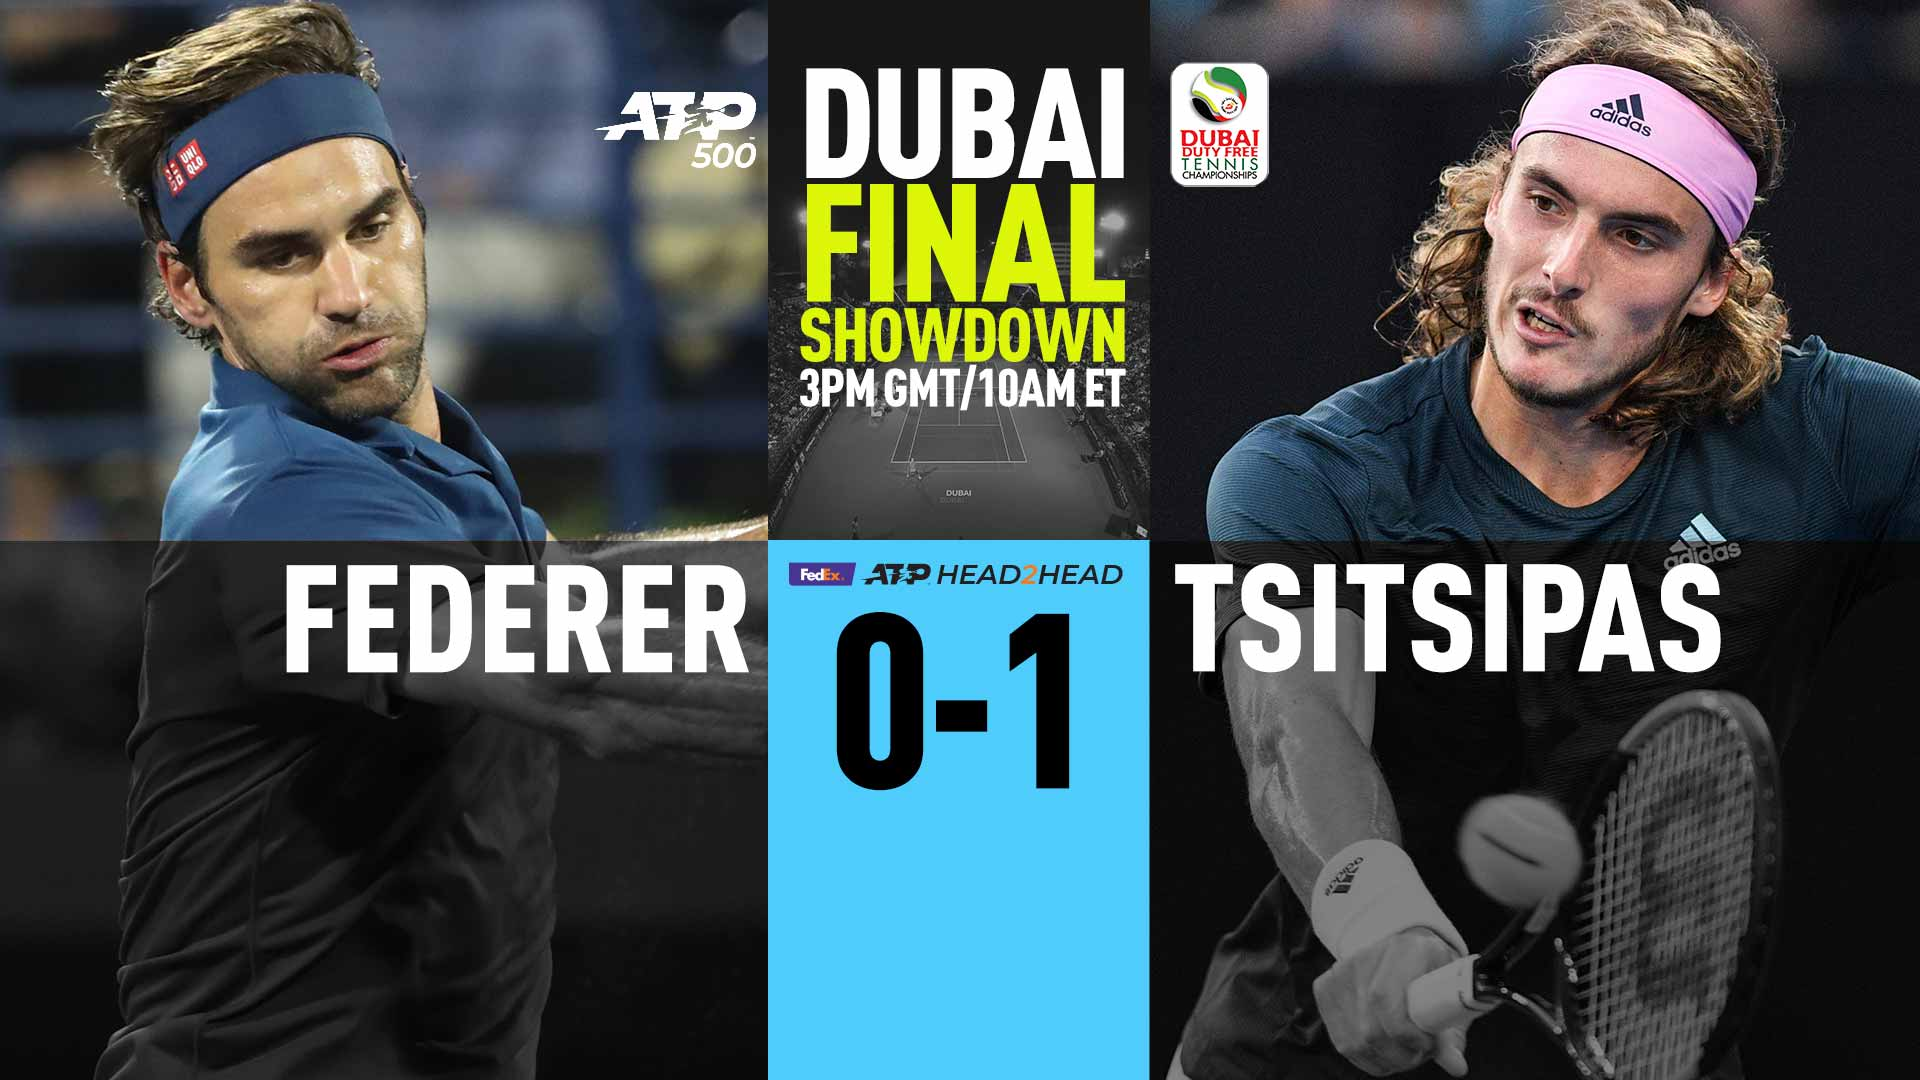 Roger Federer faces Stefanos Tsitsipas on Saturday in the final of the Dubai Duty Free Tennis Championships.